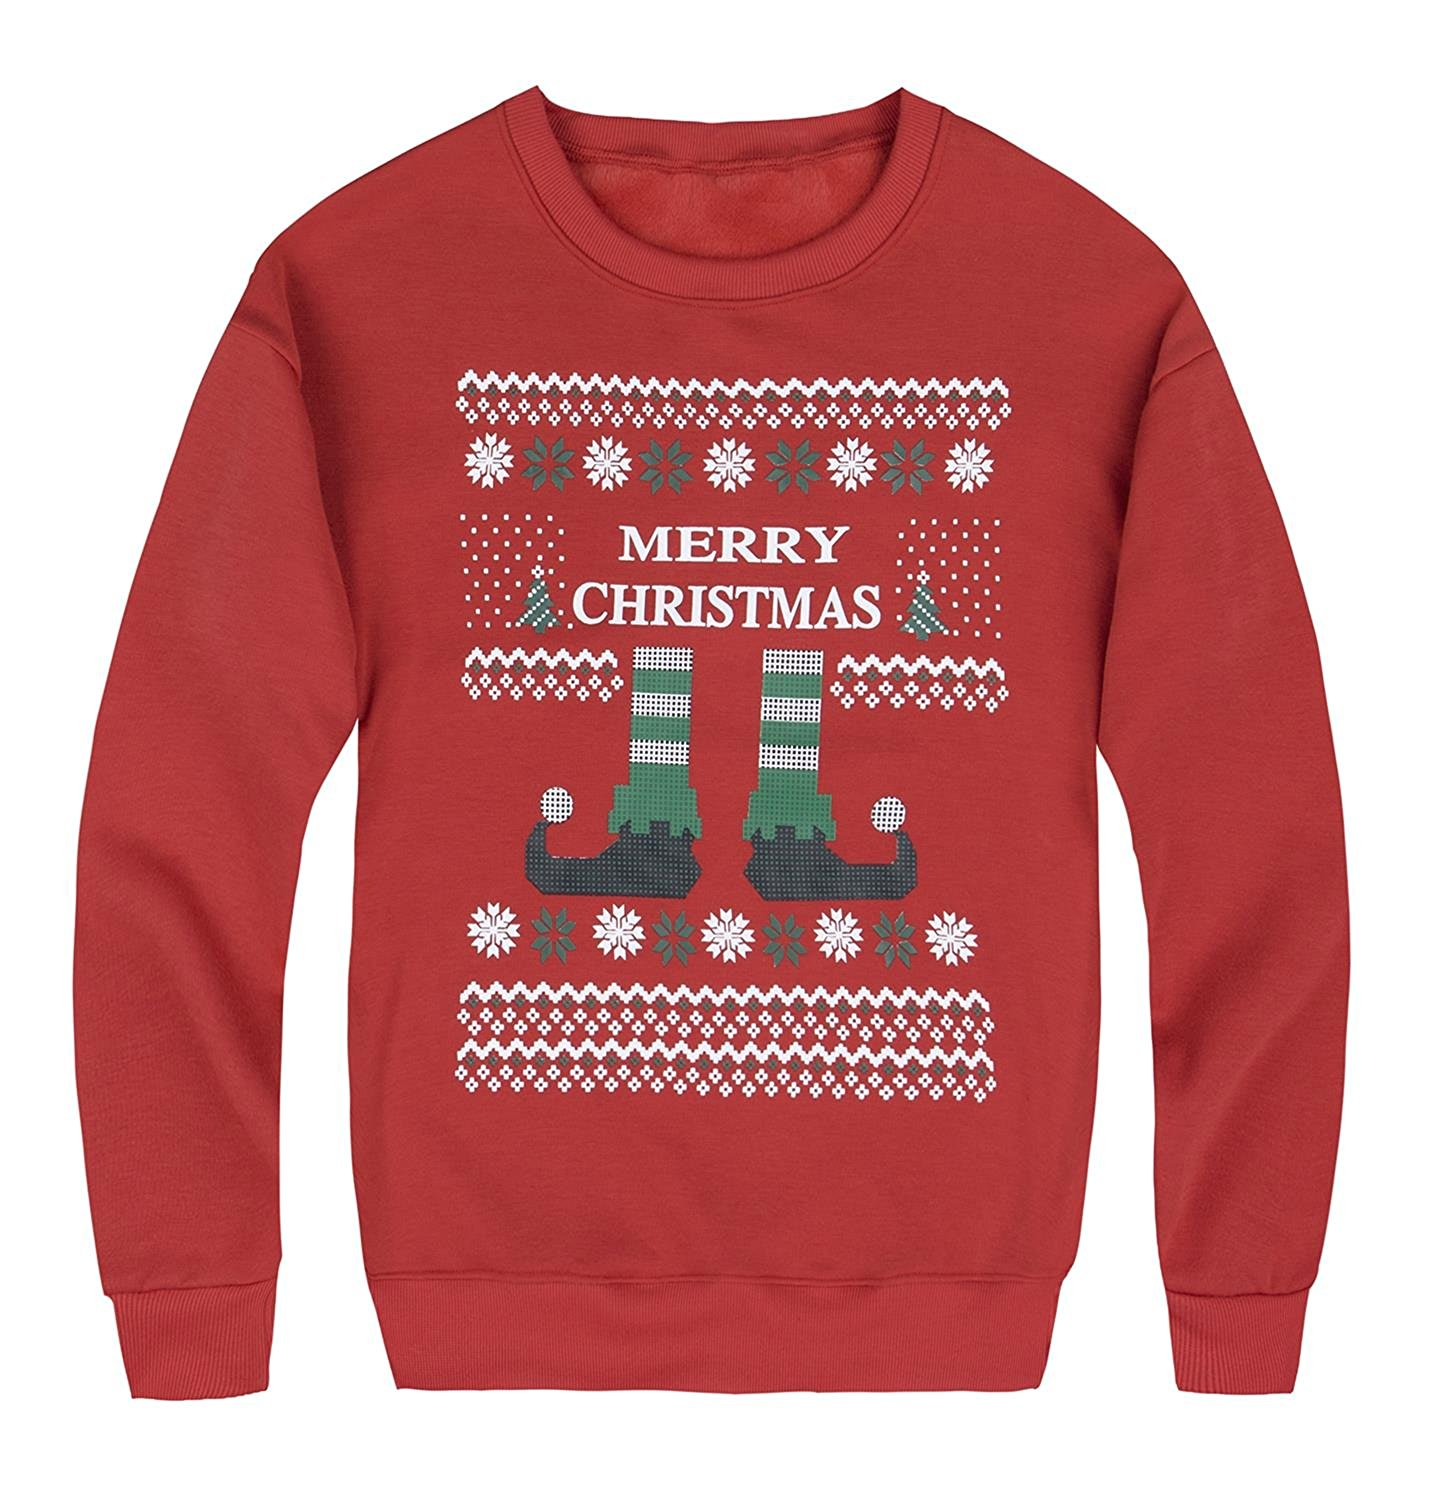 Cheap Ugly Christmas Sweaters Women Find Ugly Christmas Sweaters